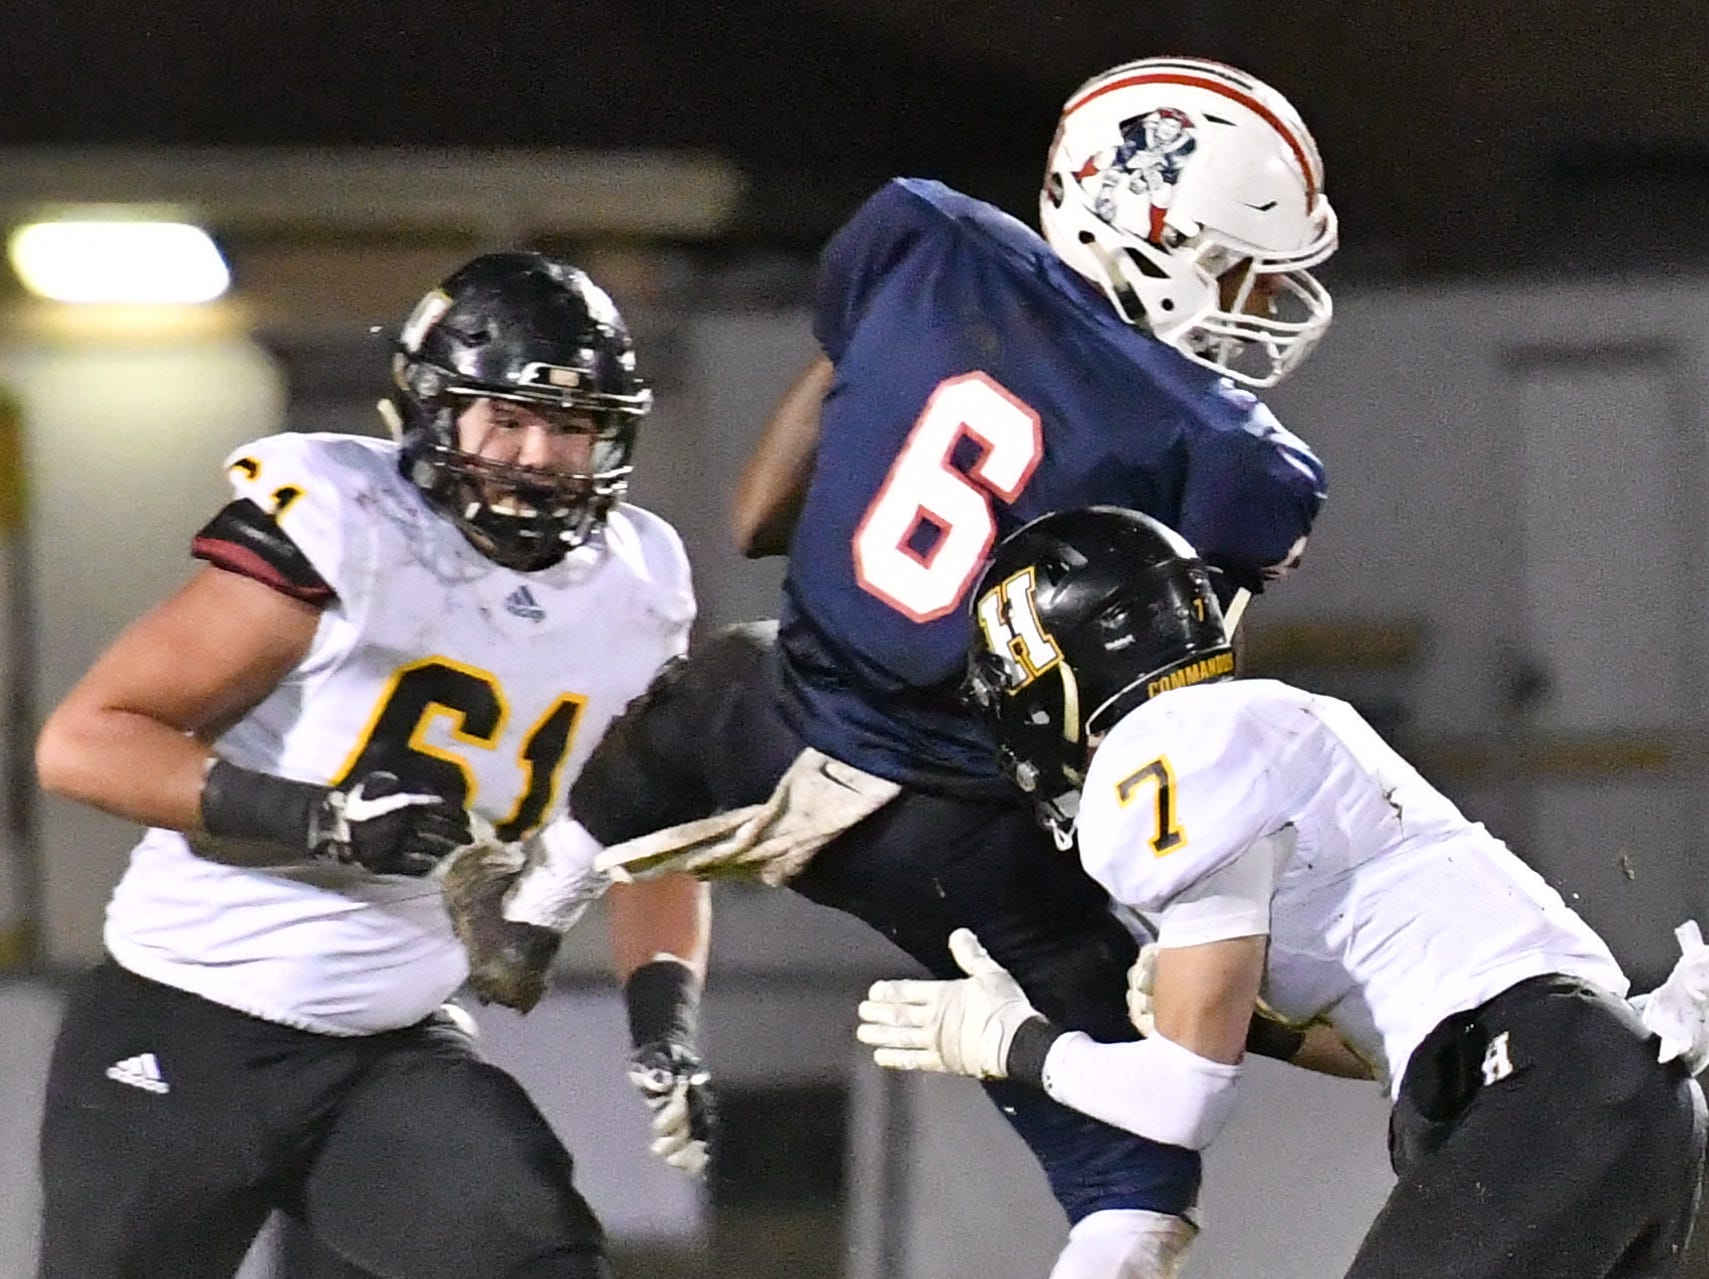 Oakland receiver Justin Jefferson hauls in a pass against Hendersonville Friday night as Logan Spurrier and Zach Rockom move in for the tackle.